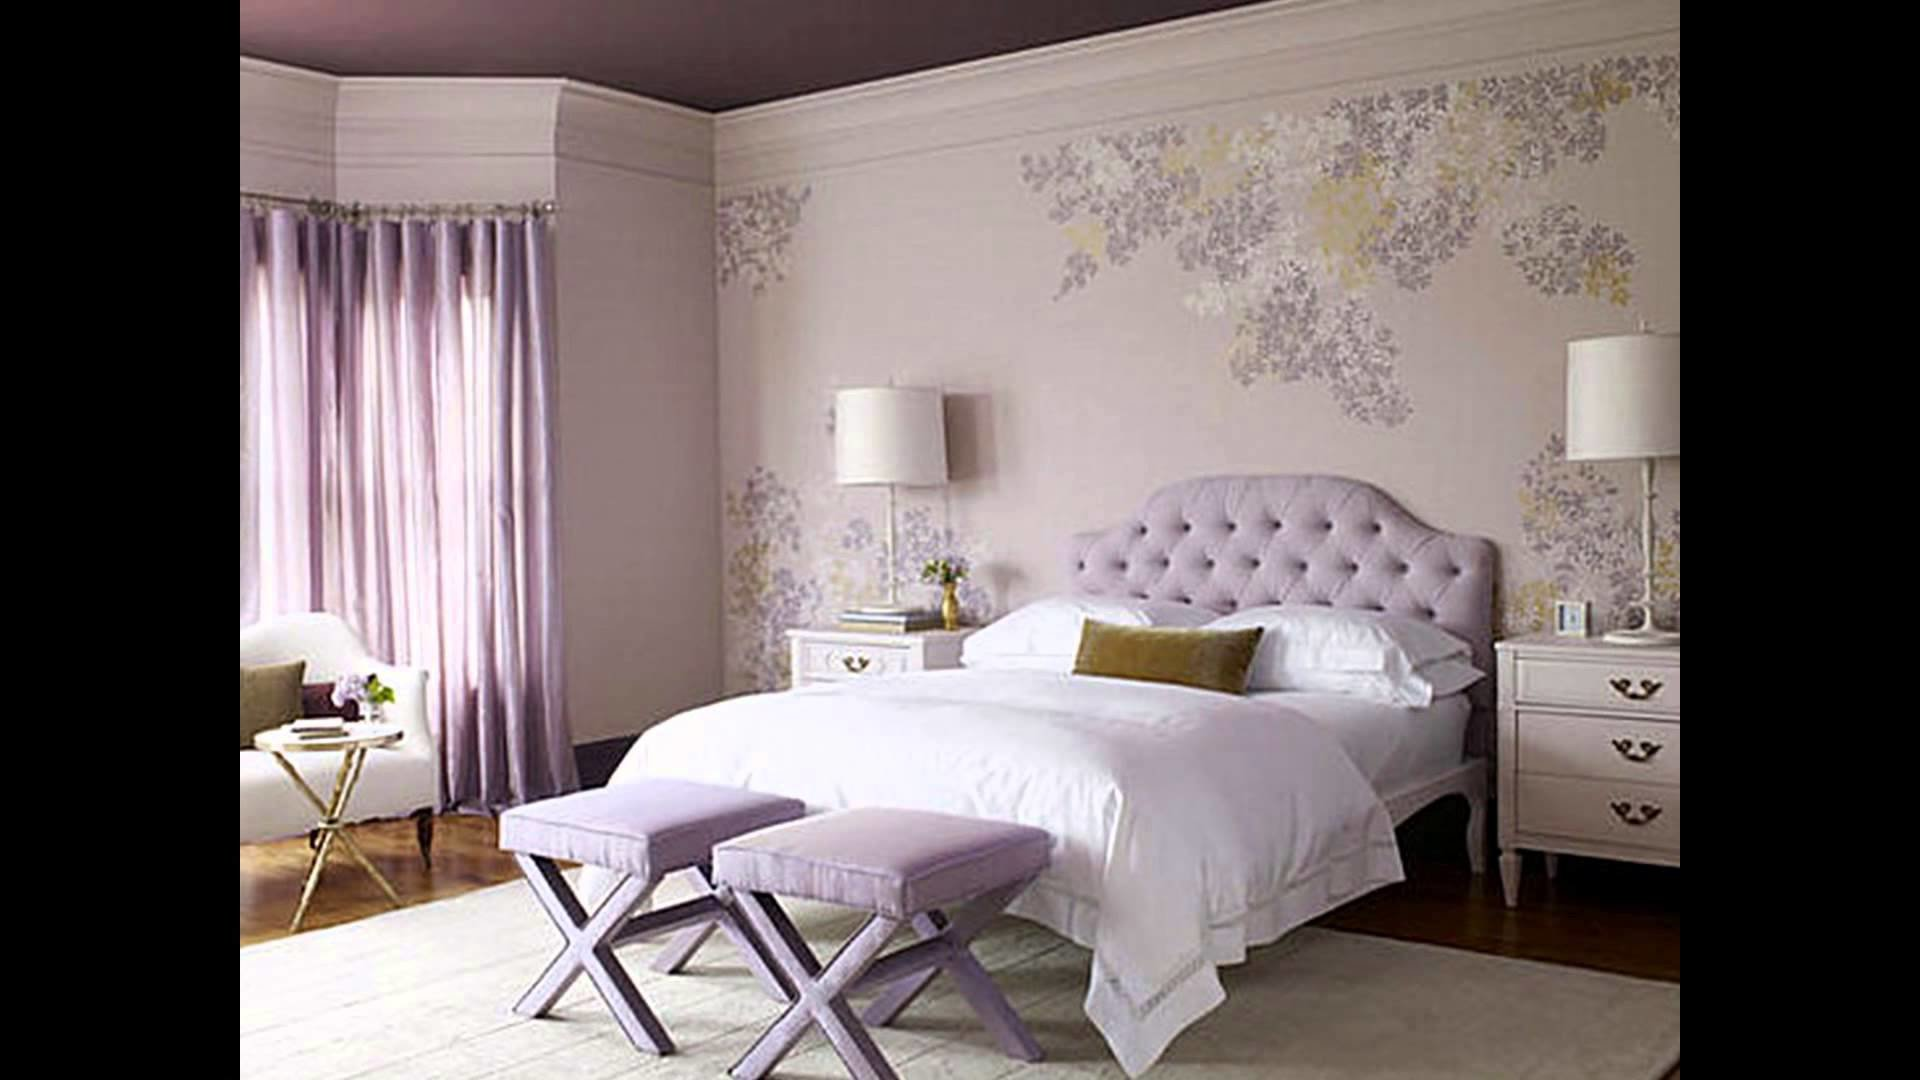 Best Secret Tips For Having A Classy Elegant Bedroom With With Pictures